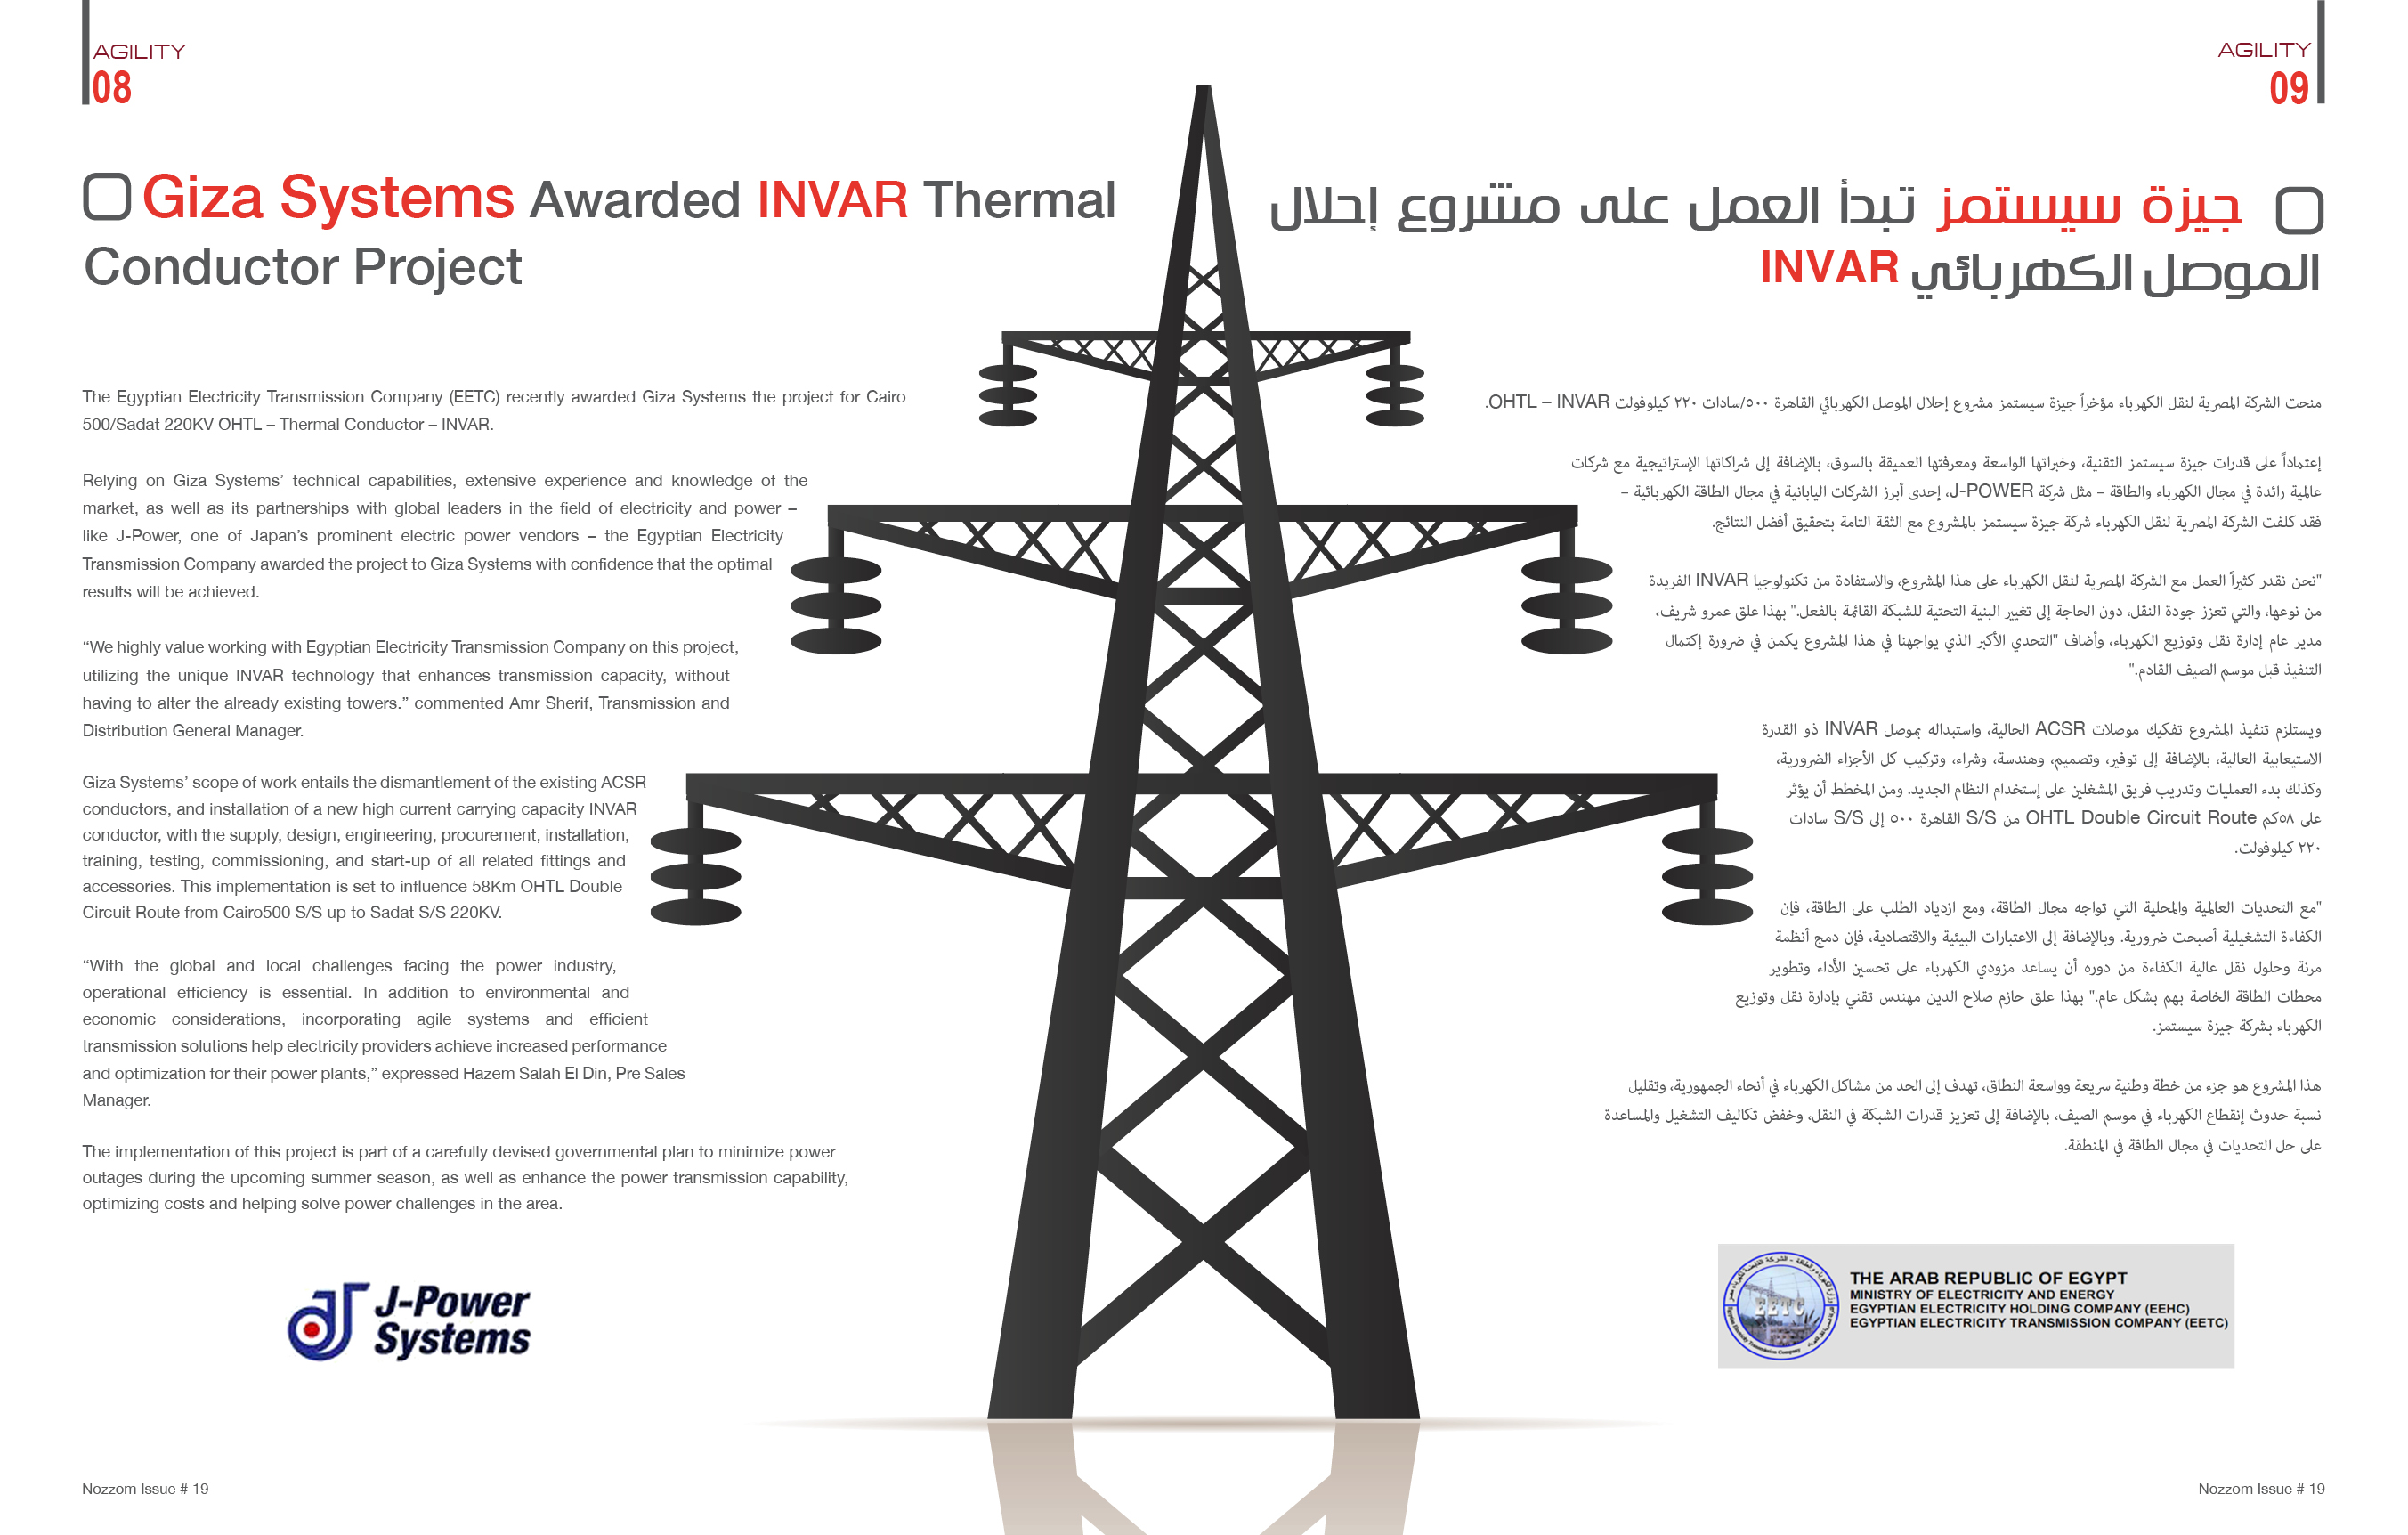 Giza Systems Awarded Invar Thermal Conductor Project Free Download Gio Guitar Wiring Diagram